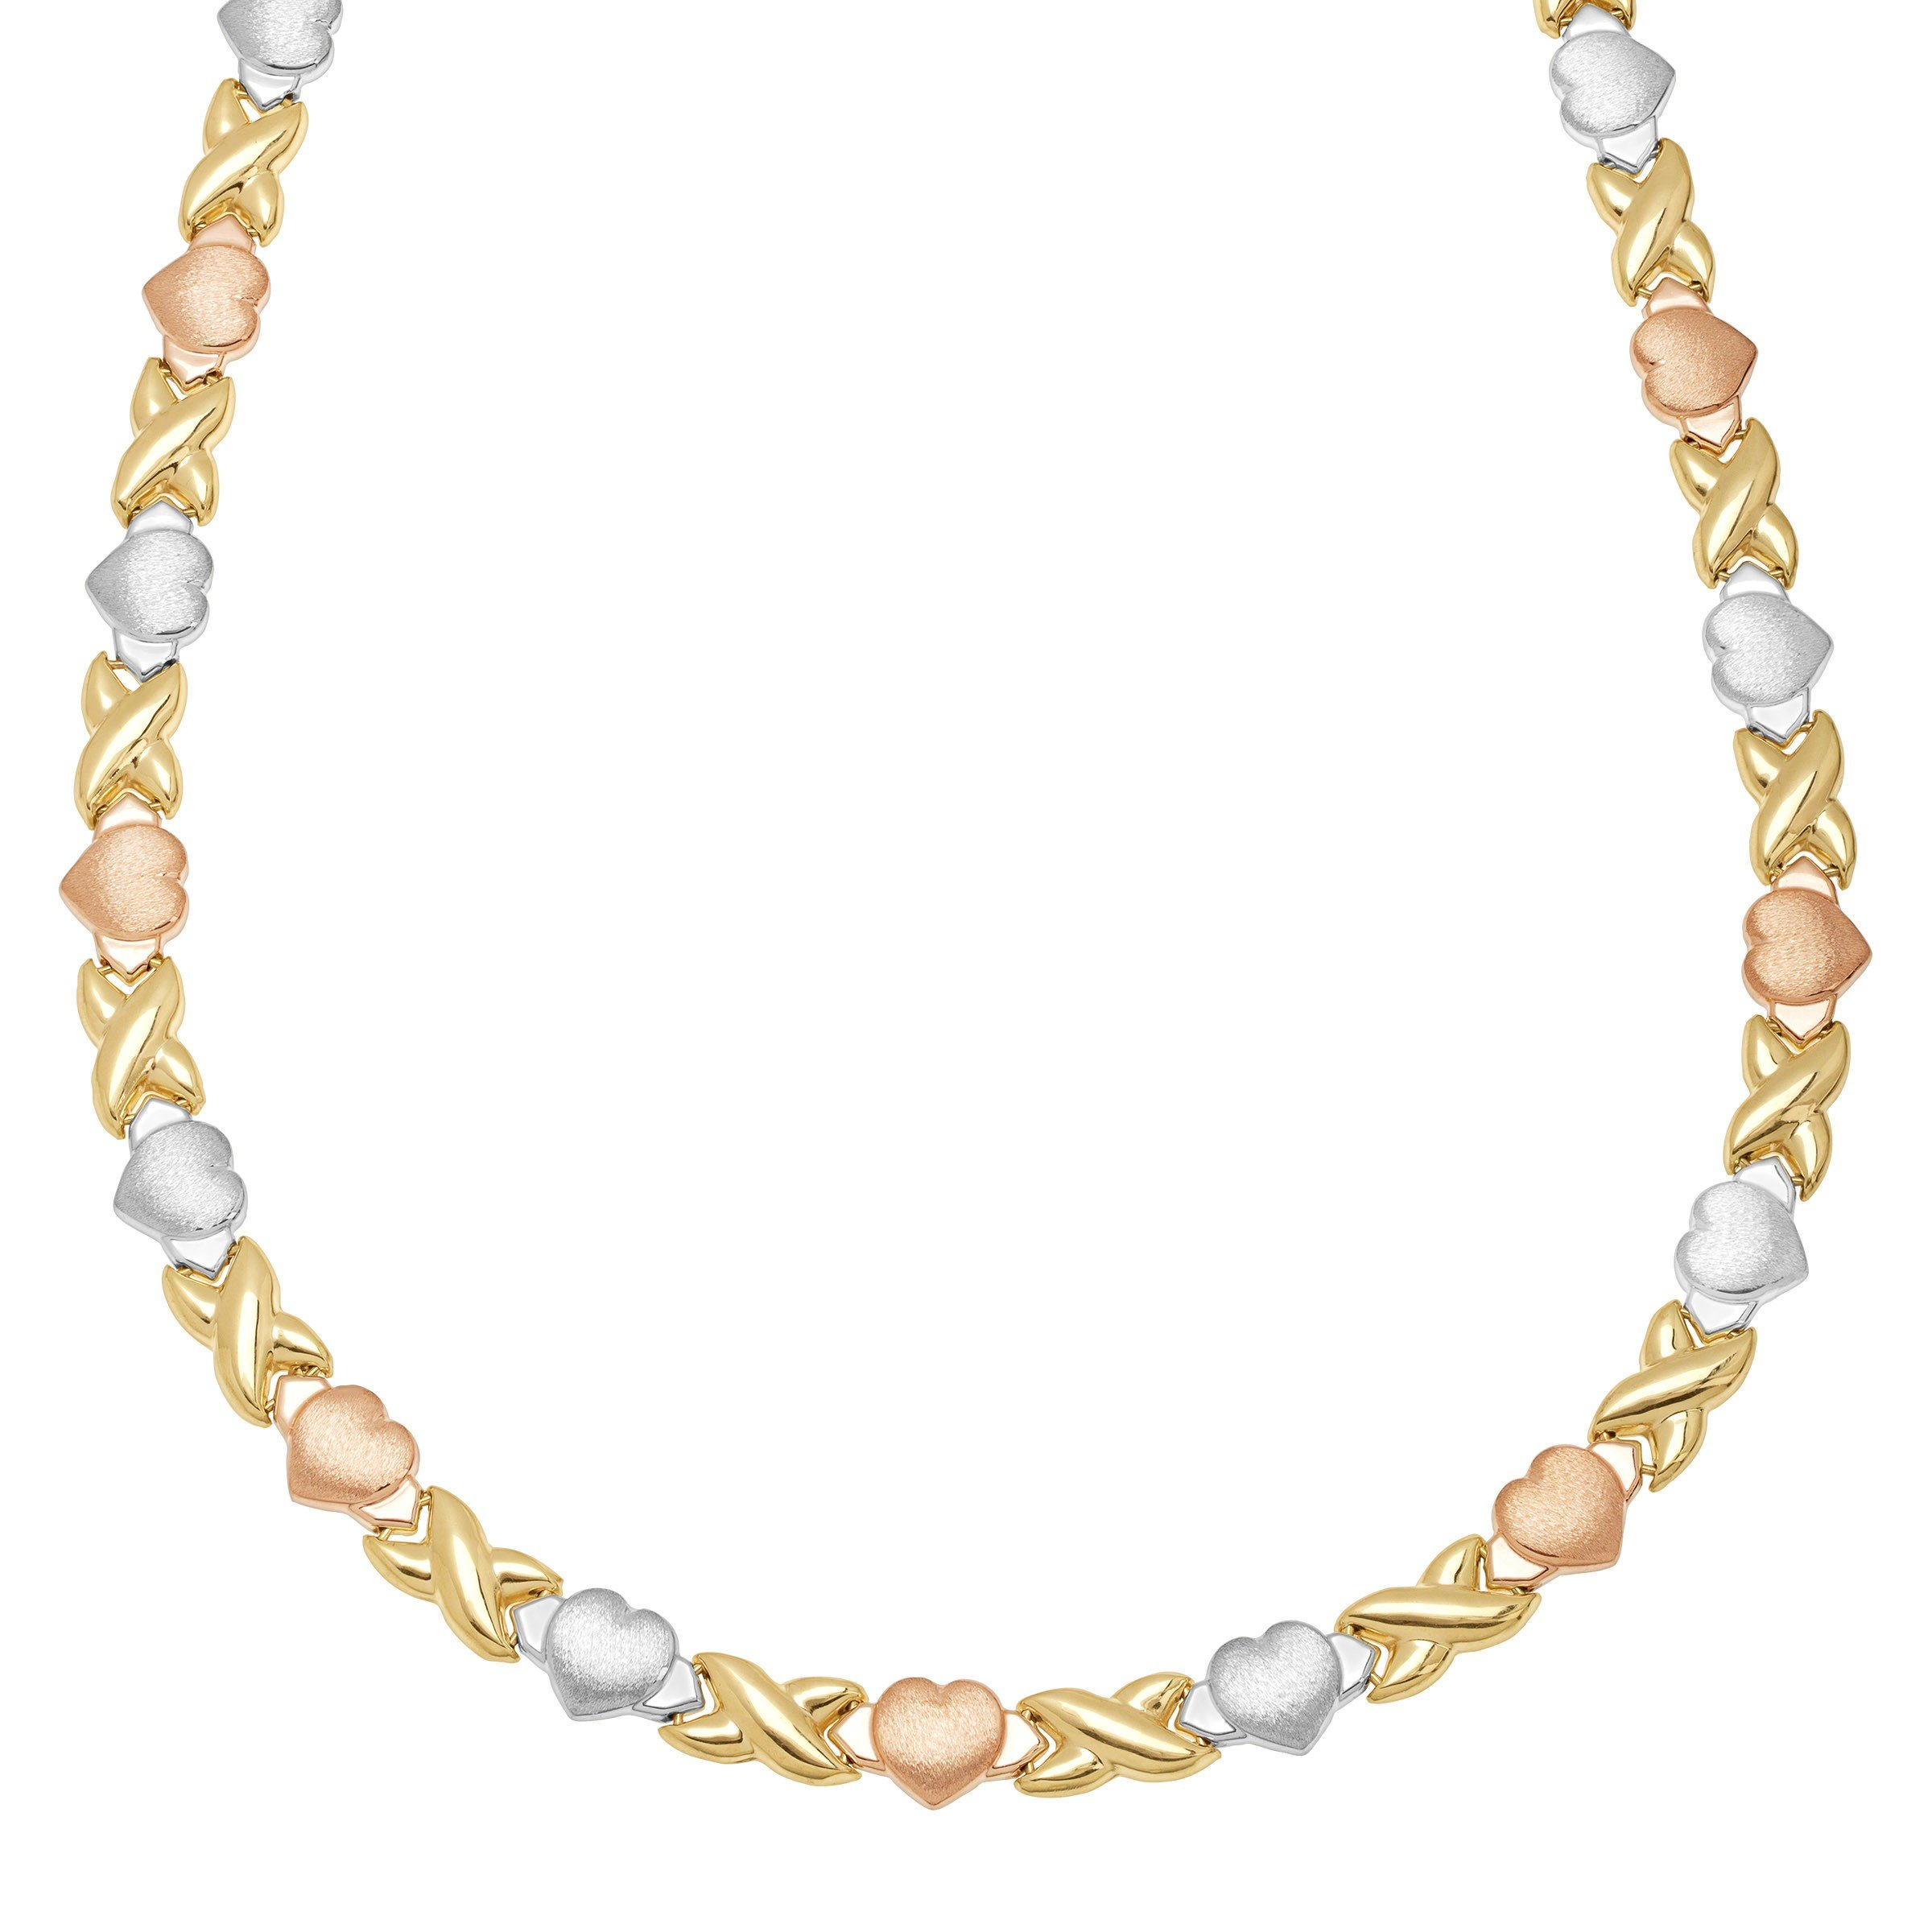 'Xo' Link Necklace in 18K Three-Tone Gold-Plated Sterling Silver